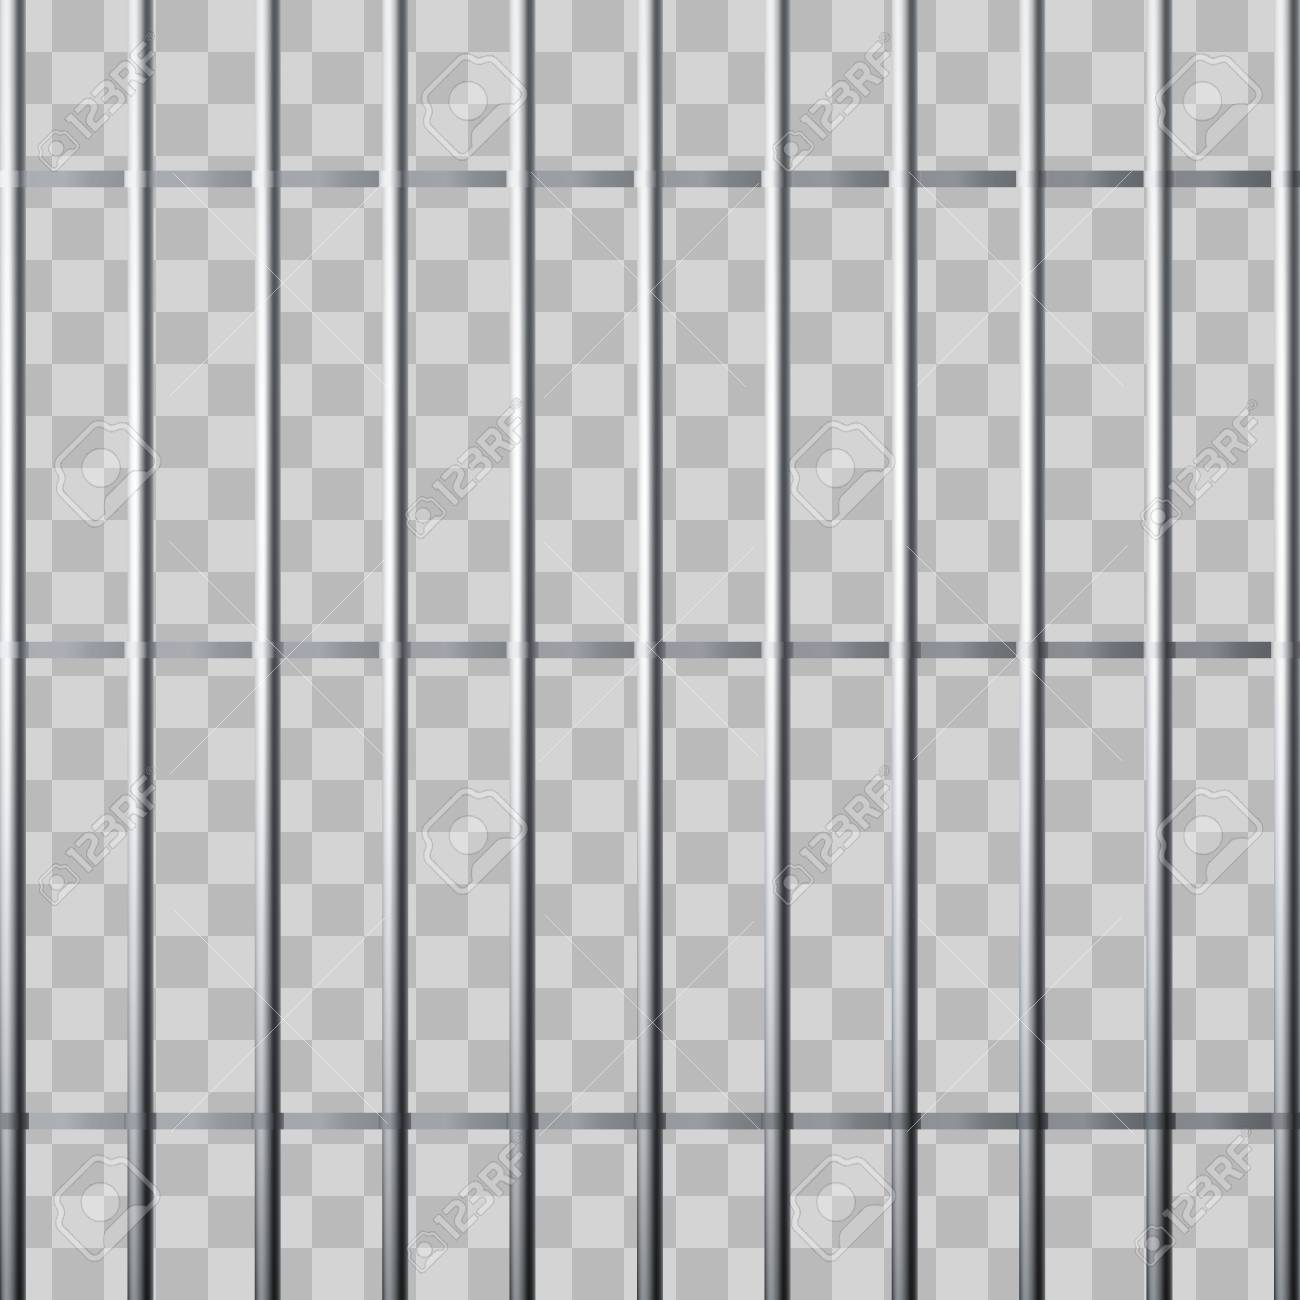 Prison Grid Metallic Cage Isolated On Transparent Background 1300x1300